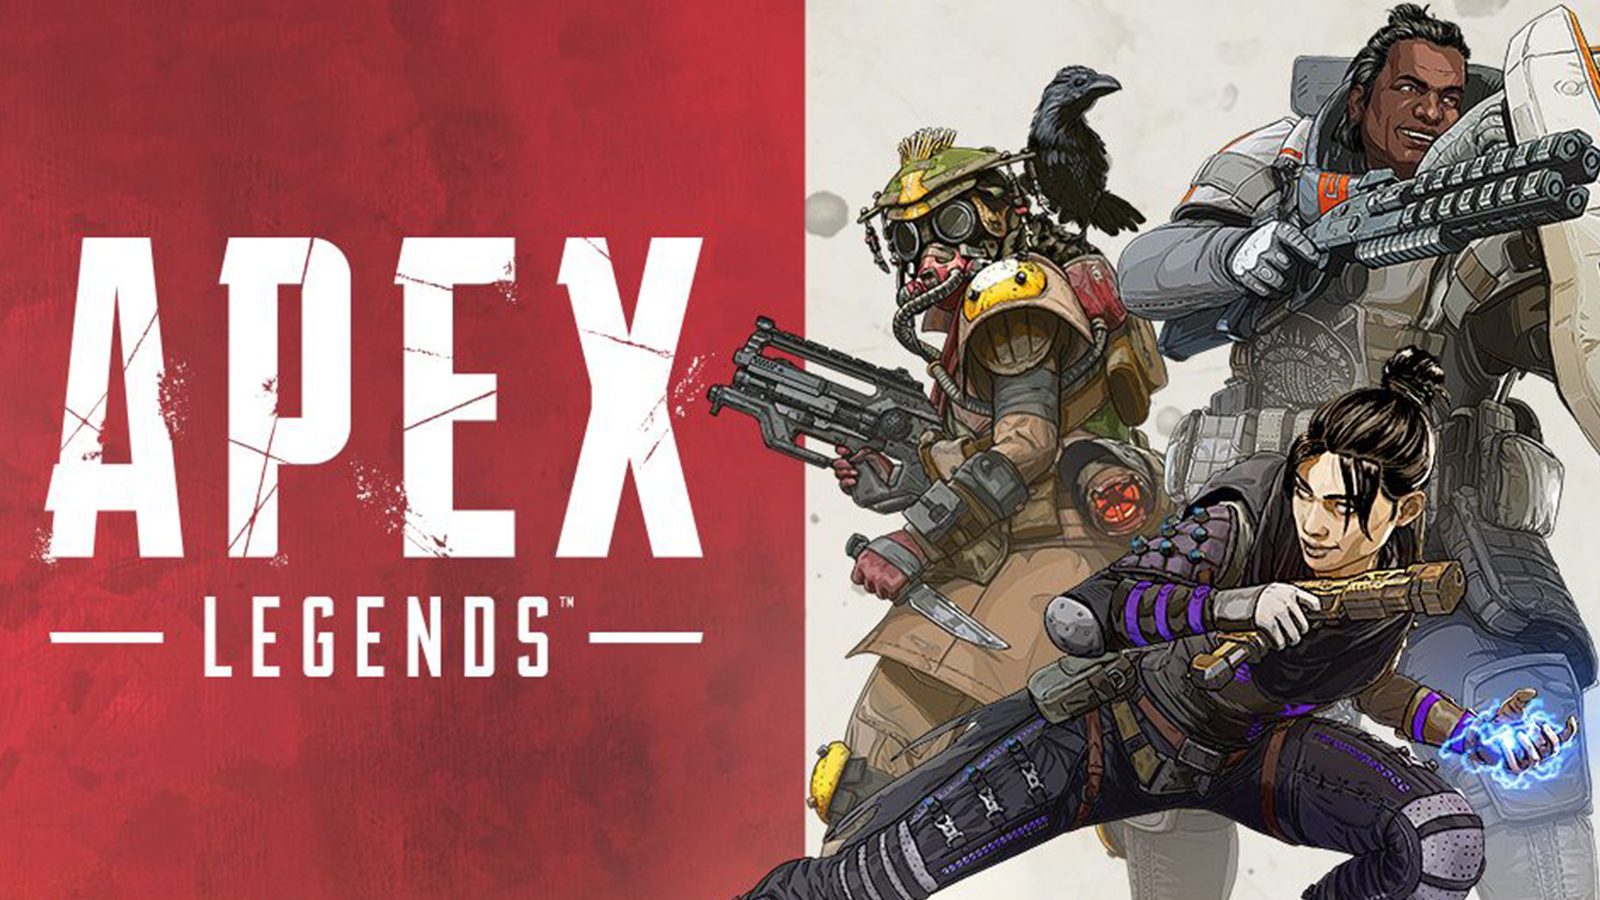 apex legends ot 50 urovnya [origin] + skidka 169 rur